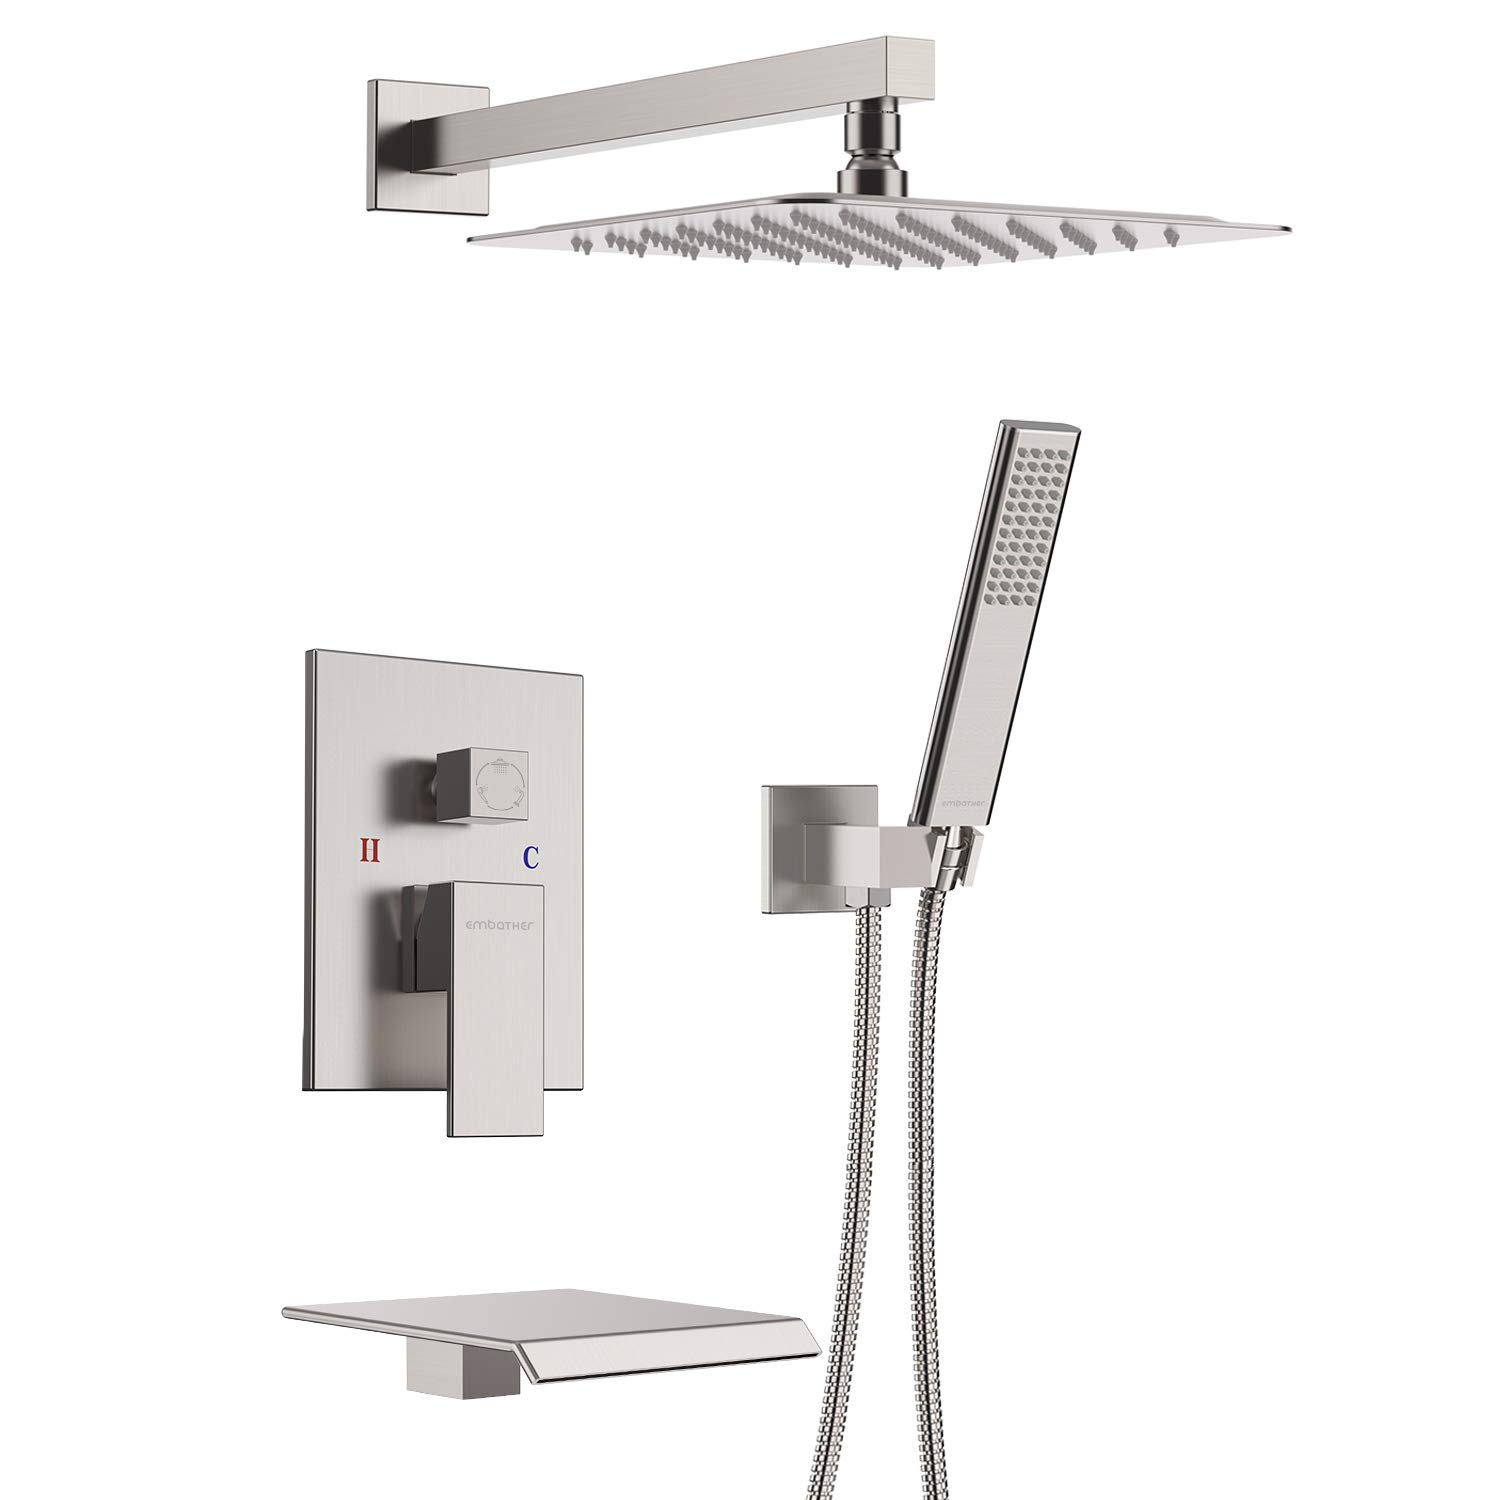 EMBATHER Shower System with Waterfall Tub Spout, Shower Faucet Set with 12'' Rain Shower Head Wall Mounted Shower Set All Metal(Contain Shower Faucet Rough-in Valve Body and Trim)